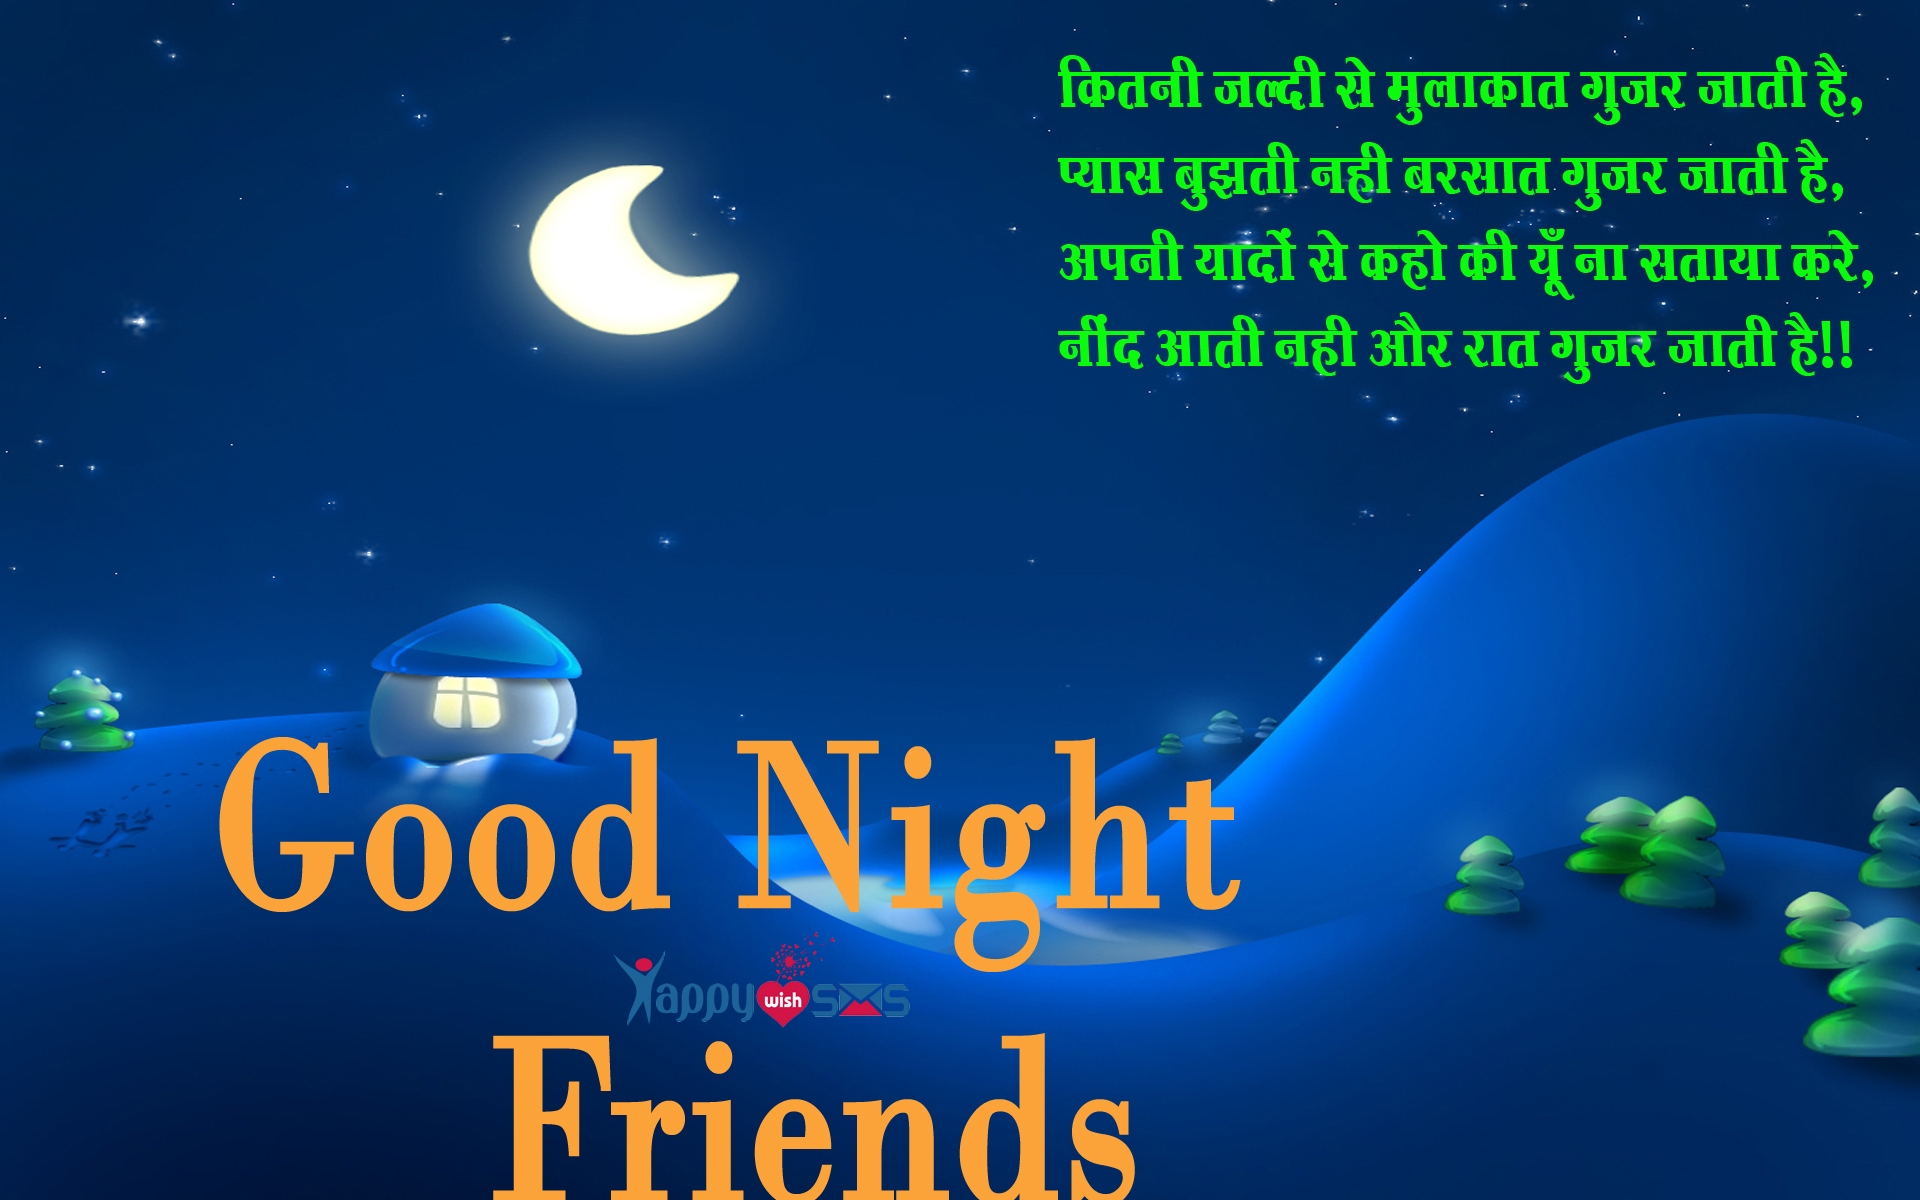 Good Night Sms Kitni Jaldi Ye Mulakat Gujar Jati Hai Happy Wish Sms